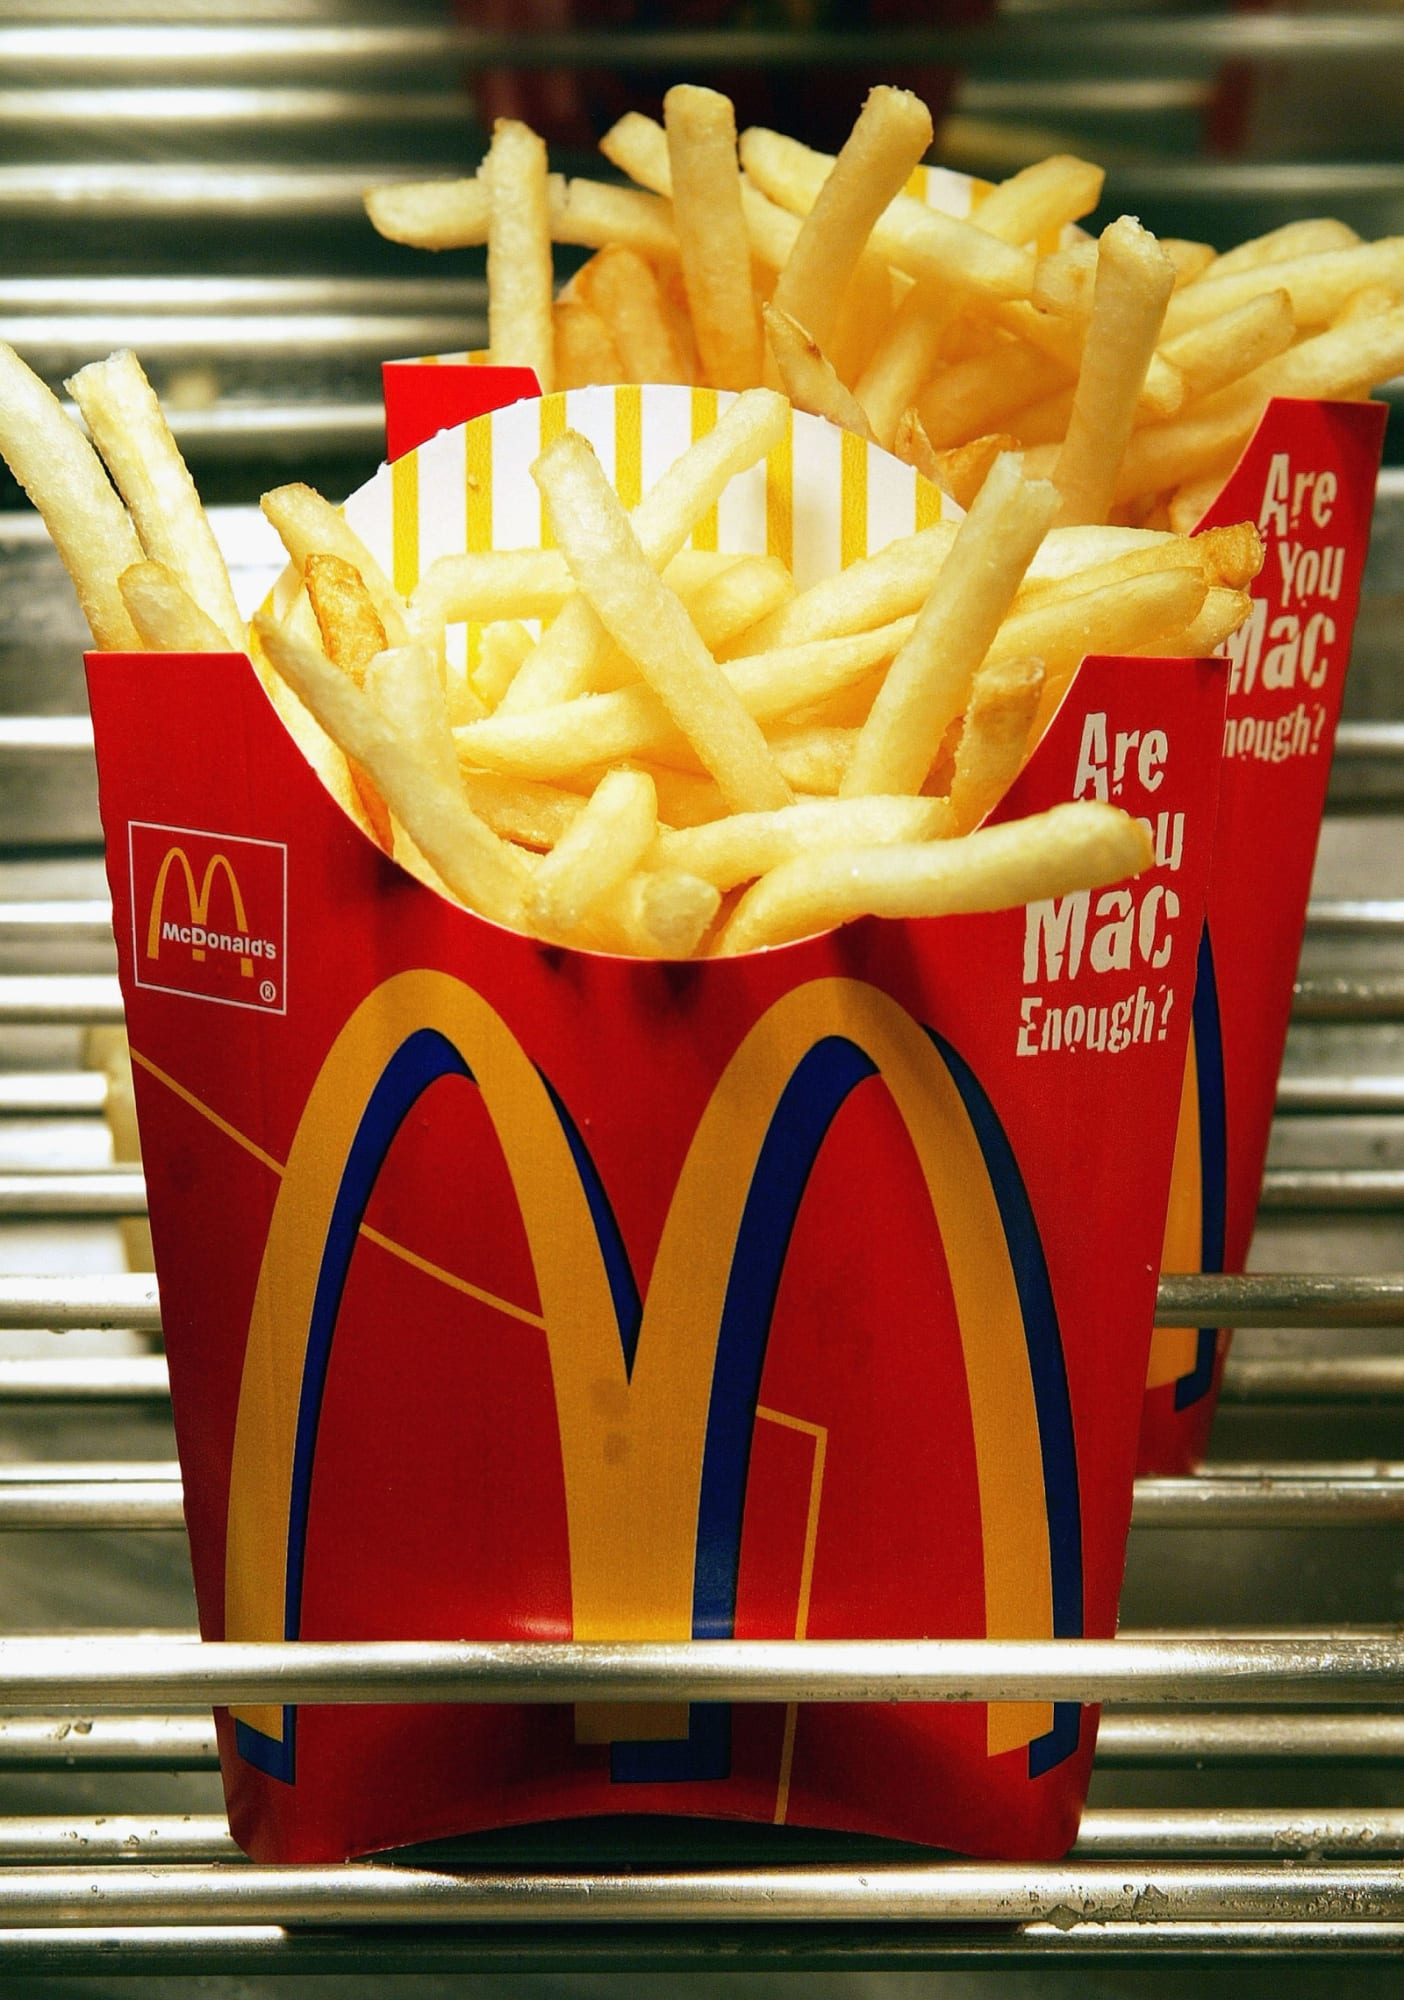 How would you like to make McDonald's fries at home?